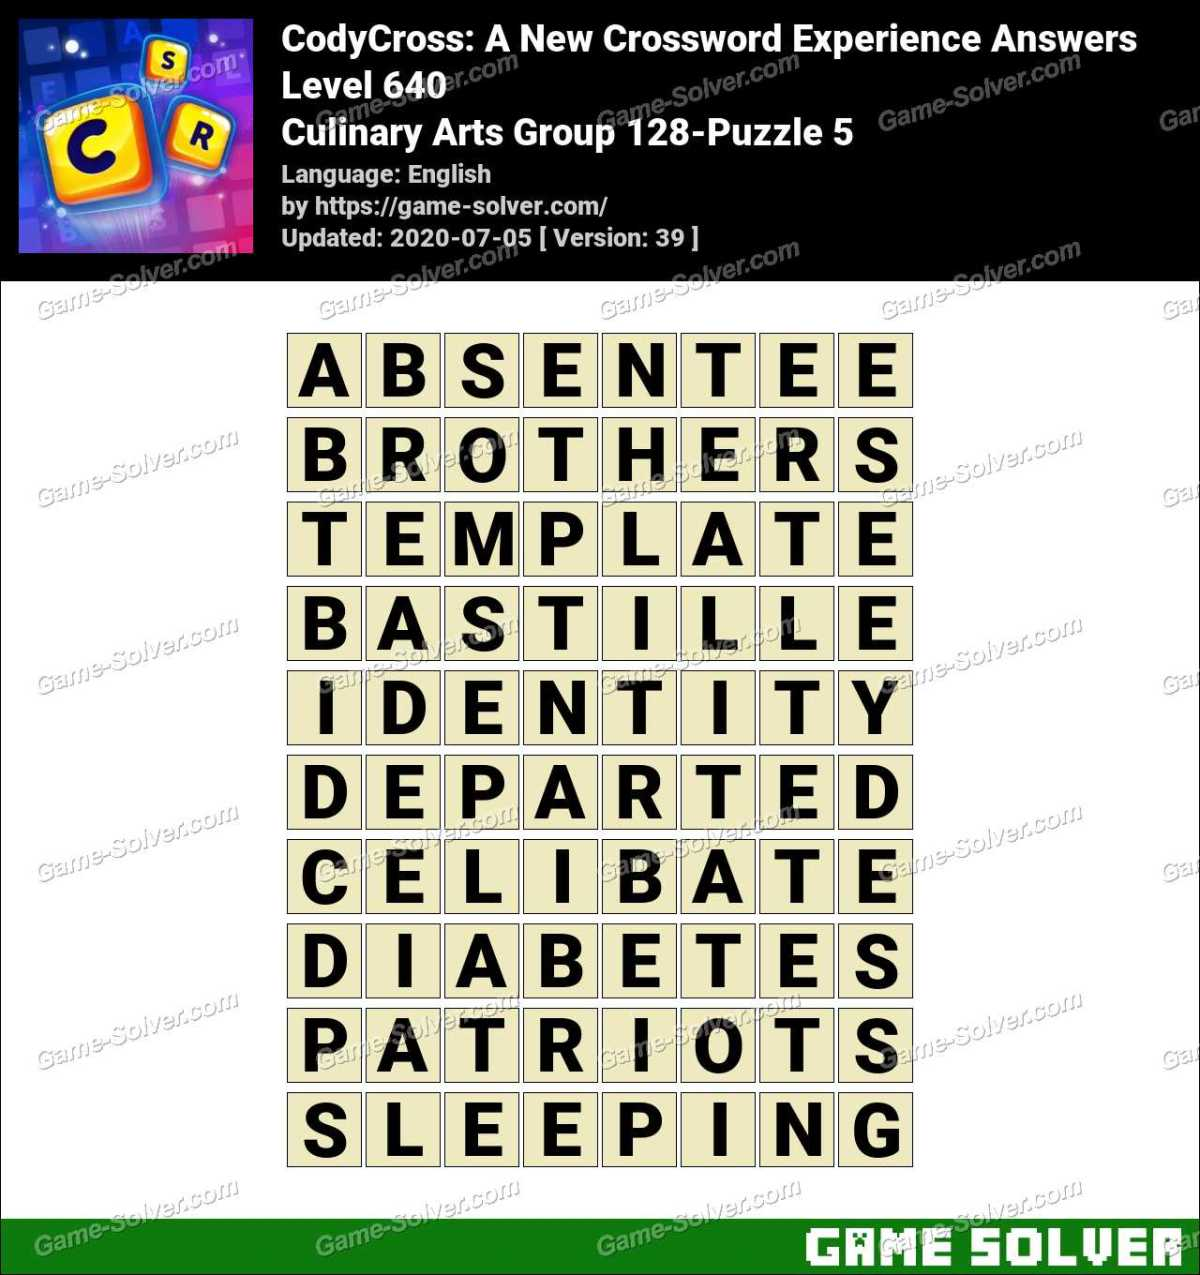 CodyCross Culinary Arts Group 128-Puzzle 5 Answers